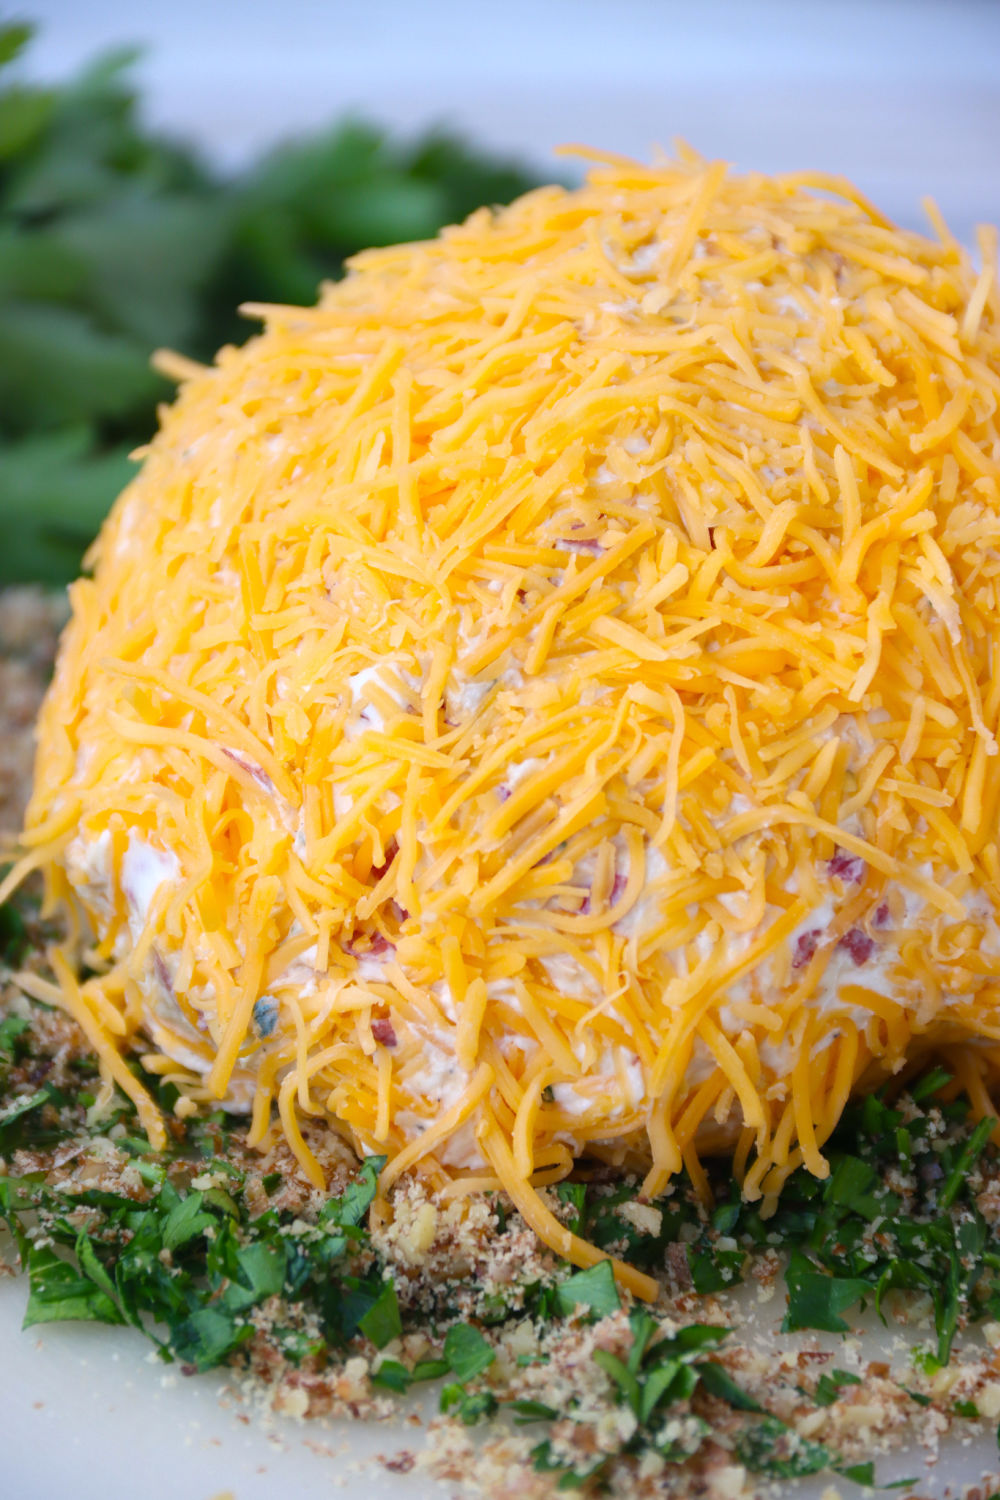 cheese ball covered in shredded cheese